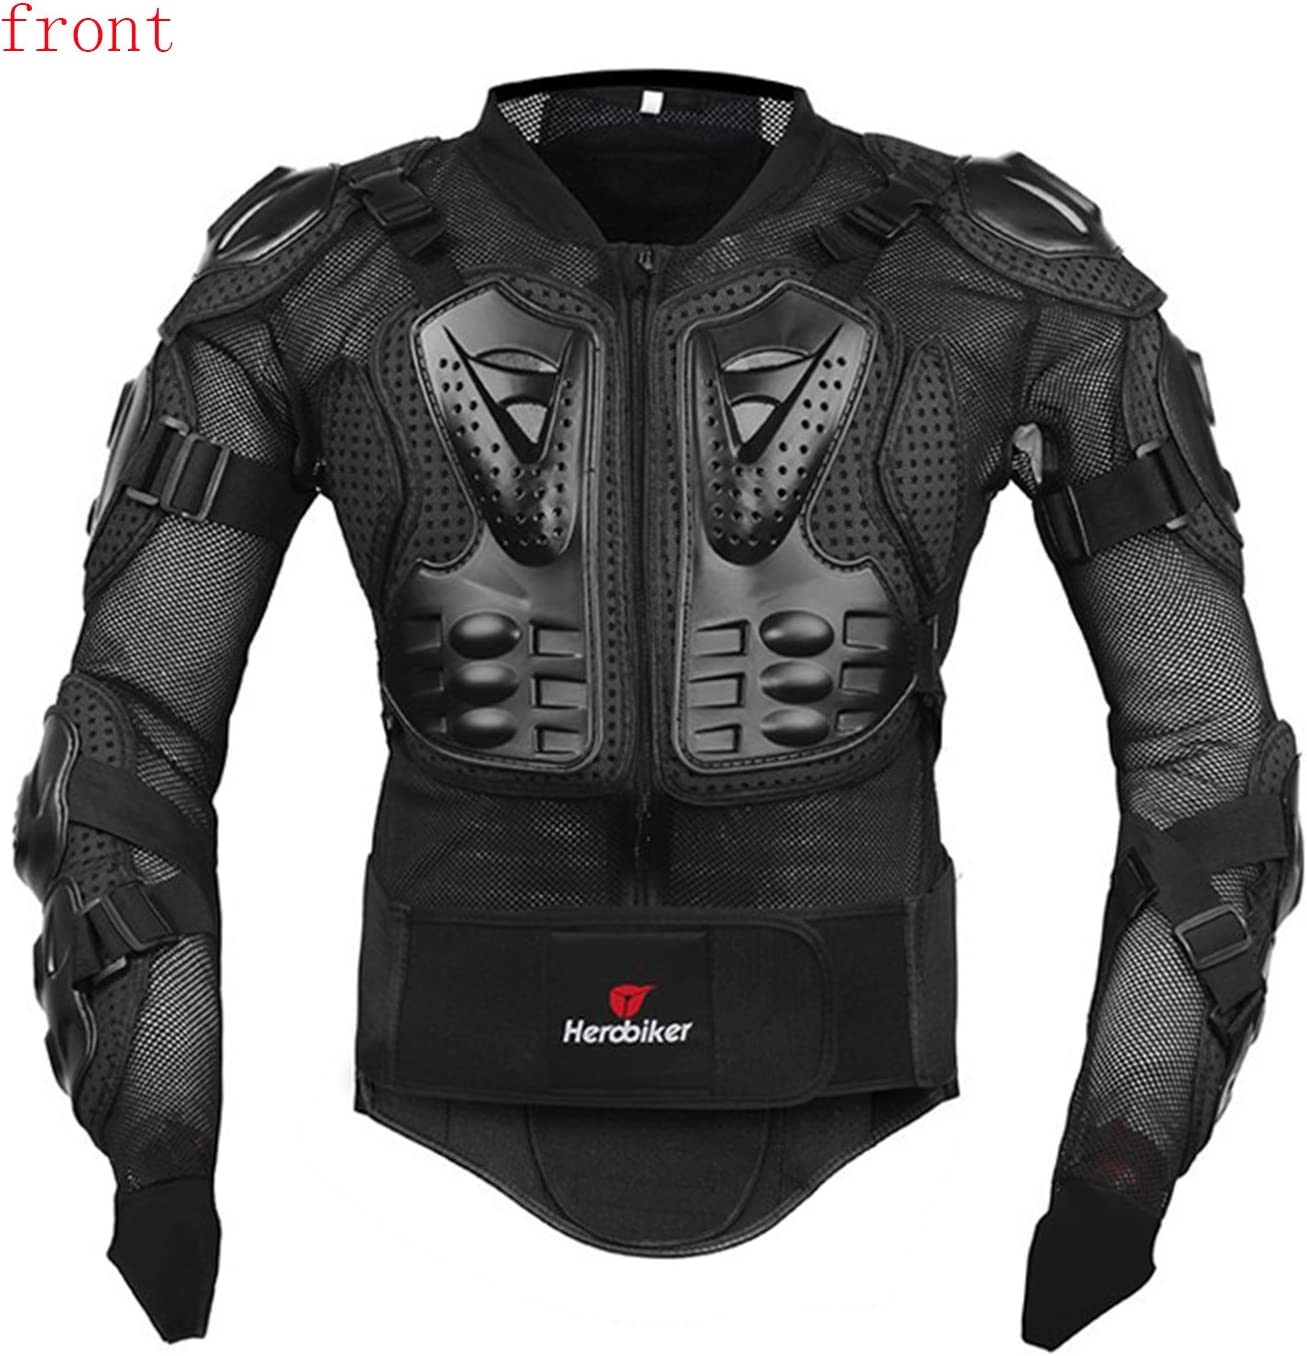 Body Armour Motorcross,Motorbike Full Body Armor Armour Protective Gear Racing Shirt Jacket Protector with Chest Back Protection Motorbike Armour for Men